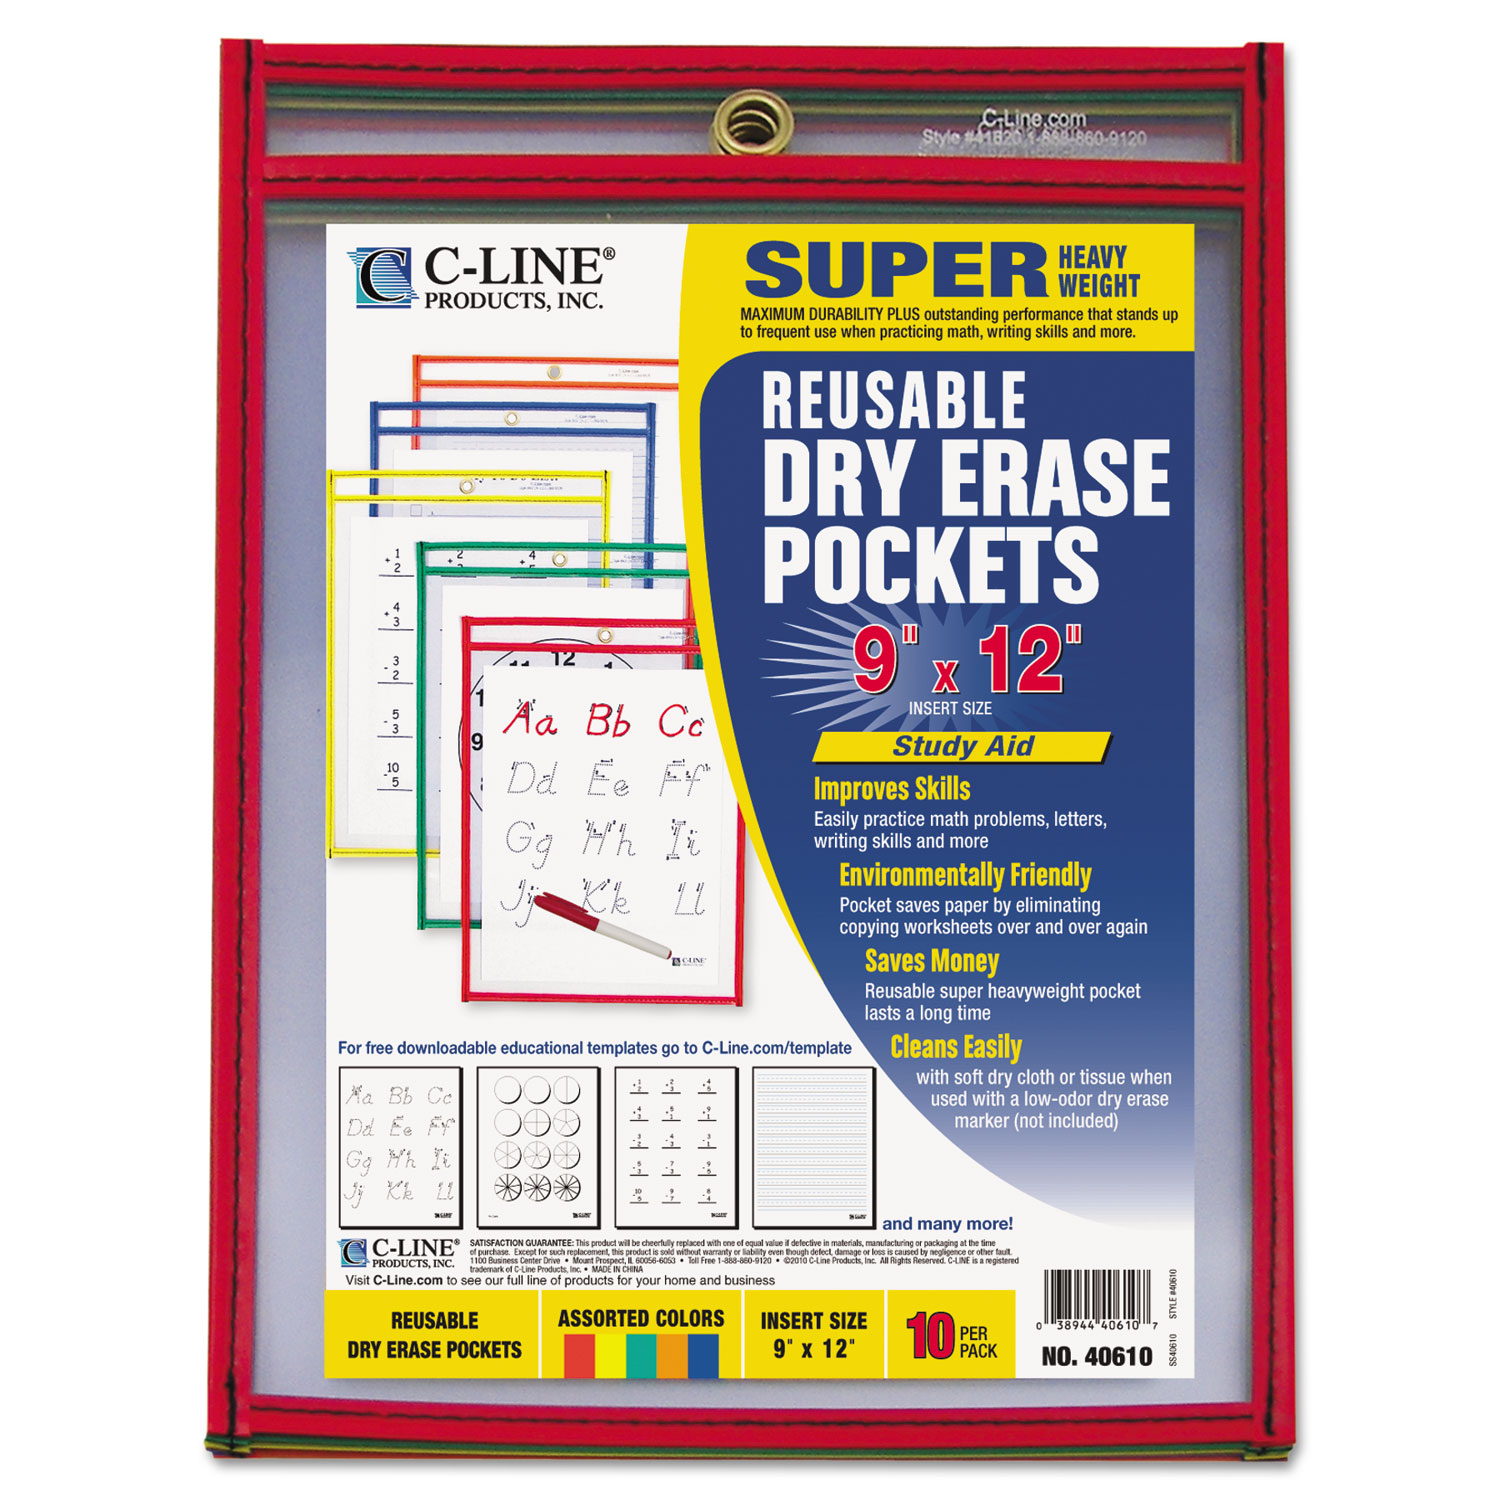 Reusable Dry Erase Pockets 9 X 12 Assorted Primary Colors 10 Pack